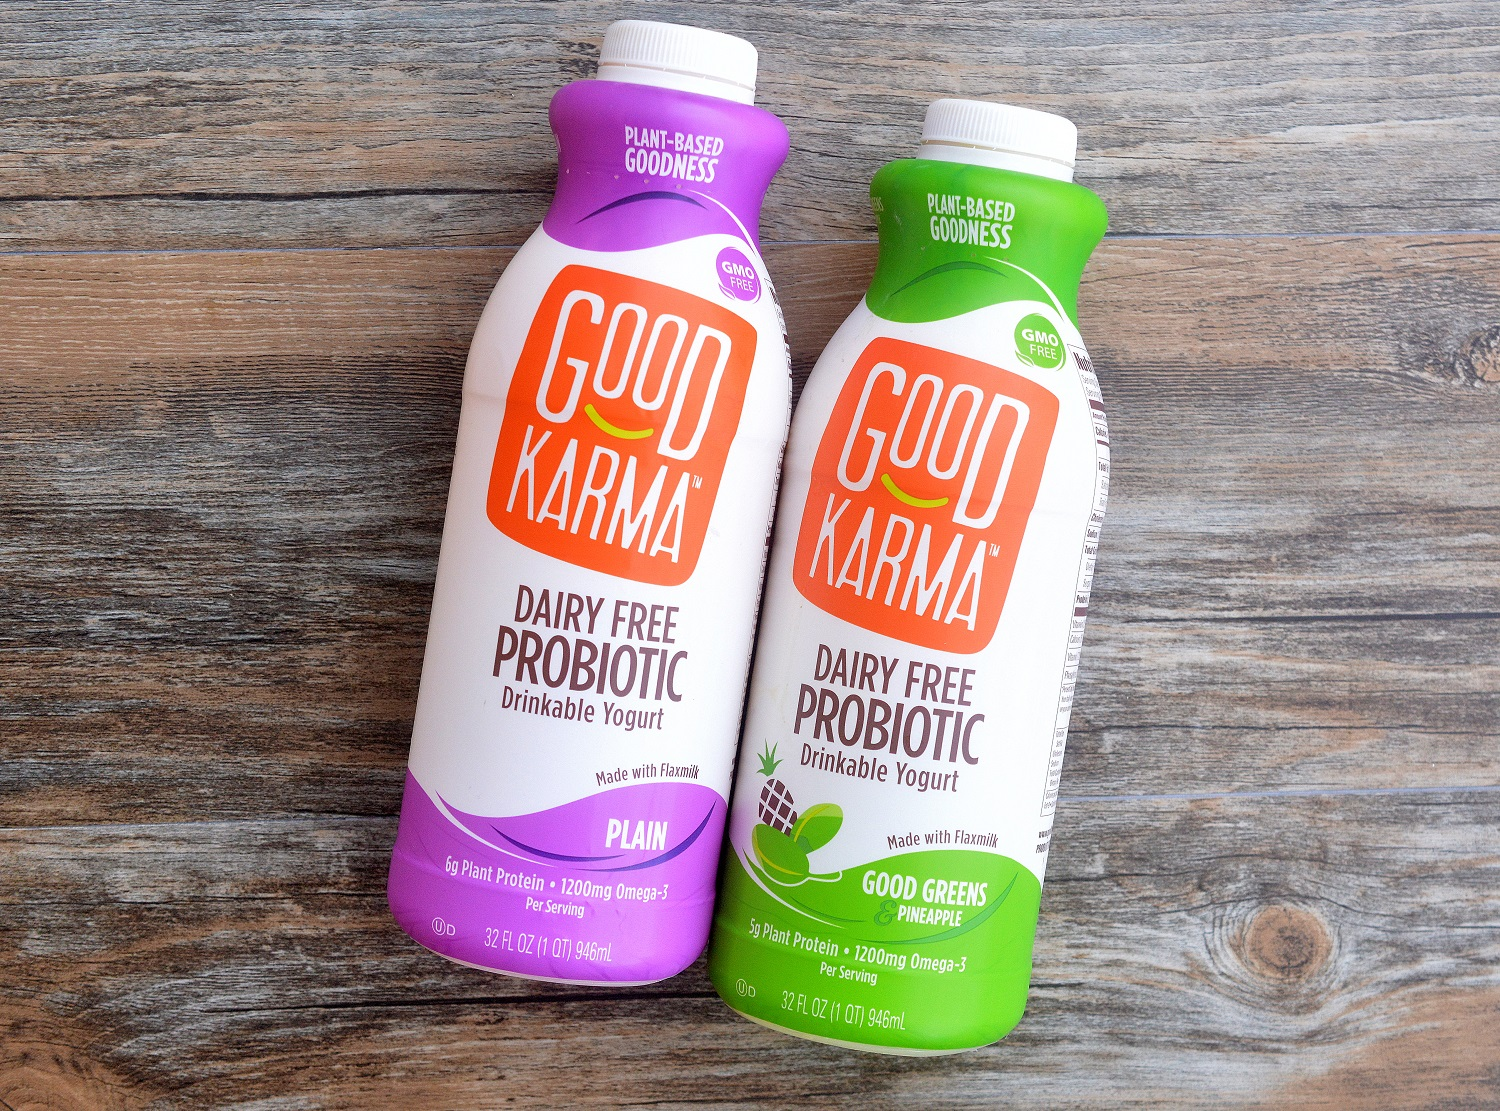 Good Karma Foods Plant Based Dairy Free Probiotic Drinkable Yogurts